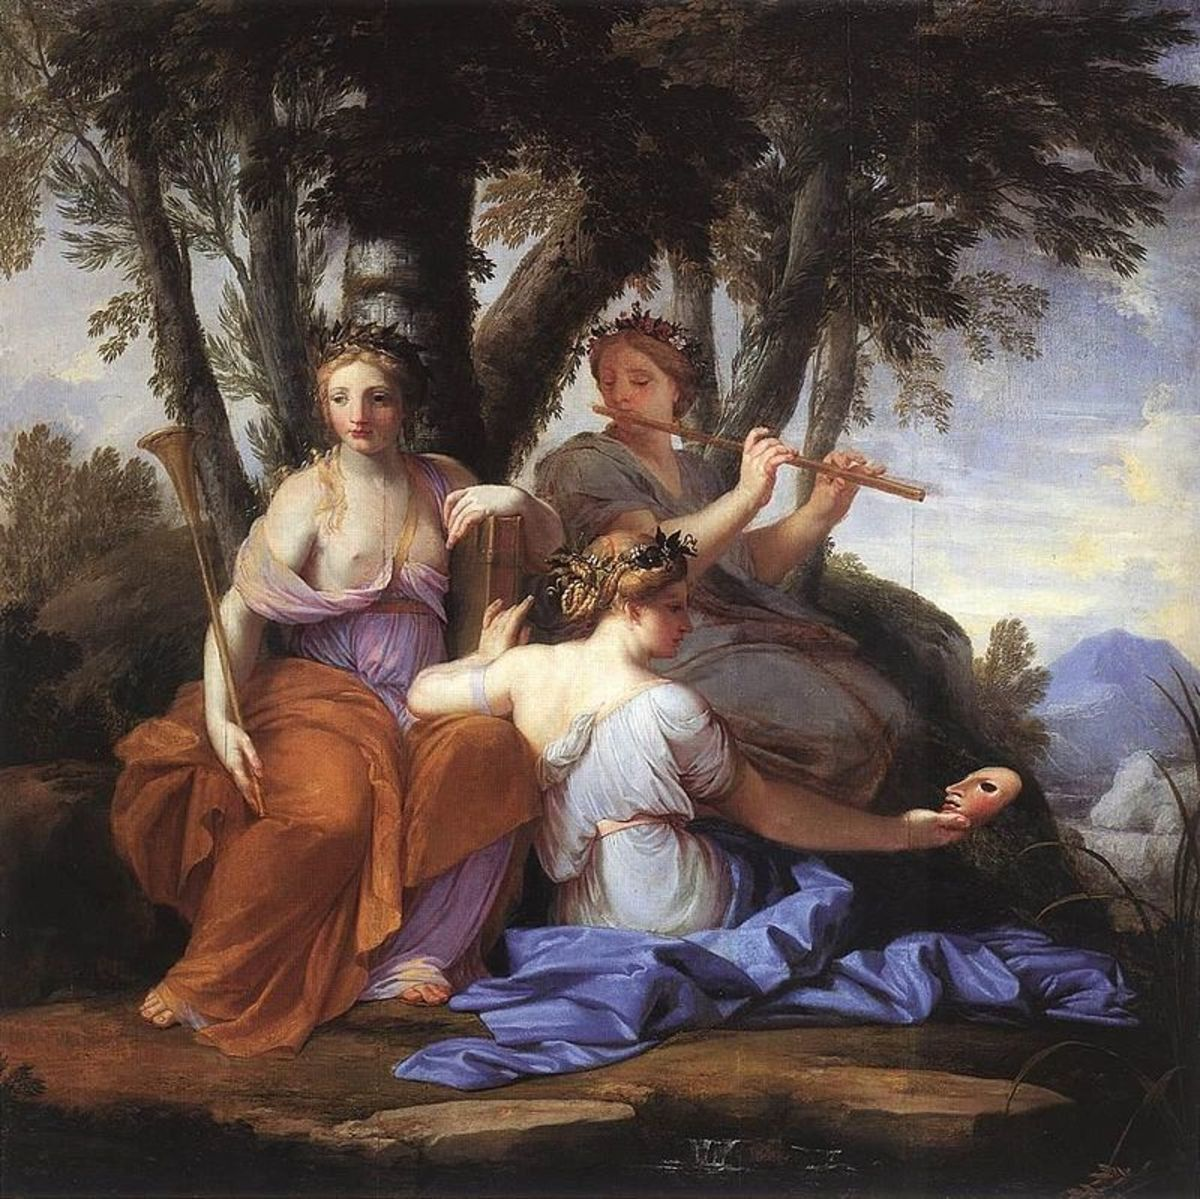 The muses are fickle bitches, but they'll still be there when you get back from exile.